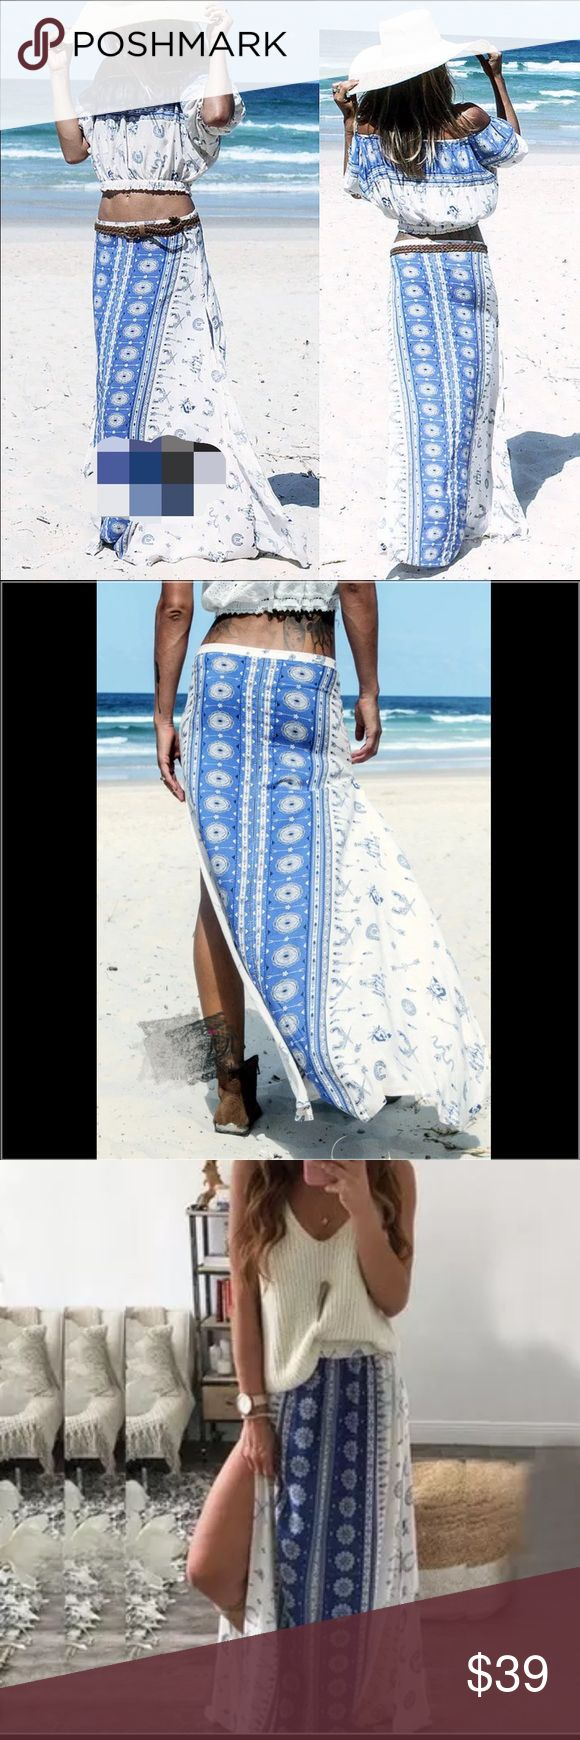 """Boho patterned pretty  maxi skirt Spell & The Gypsy collective """" has similar Styles. This unique skirt is super chic and pretty for your spring break and summer trip to the wild beach or desert. Size M: length: 37.5, butt 52.7"""" waist stretch from22.8-45.6. Lined length: 11"""". Size XL length: 37.5, butt 49.5, waist stretch from. 26-48.8"""" Lined length: 11"""".. Material: rayon Boutique  Skirts Maxi"""